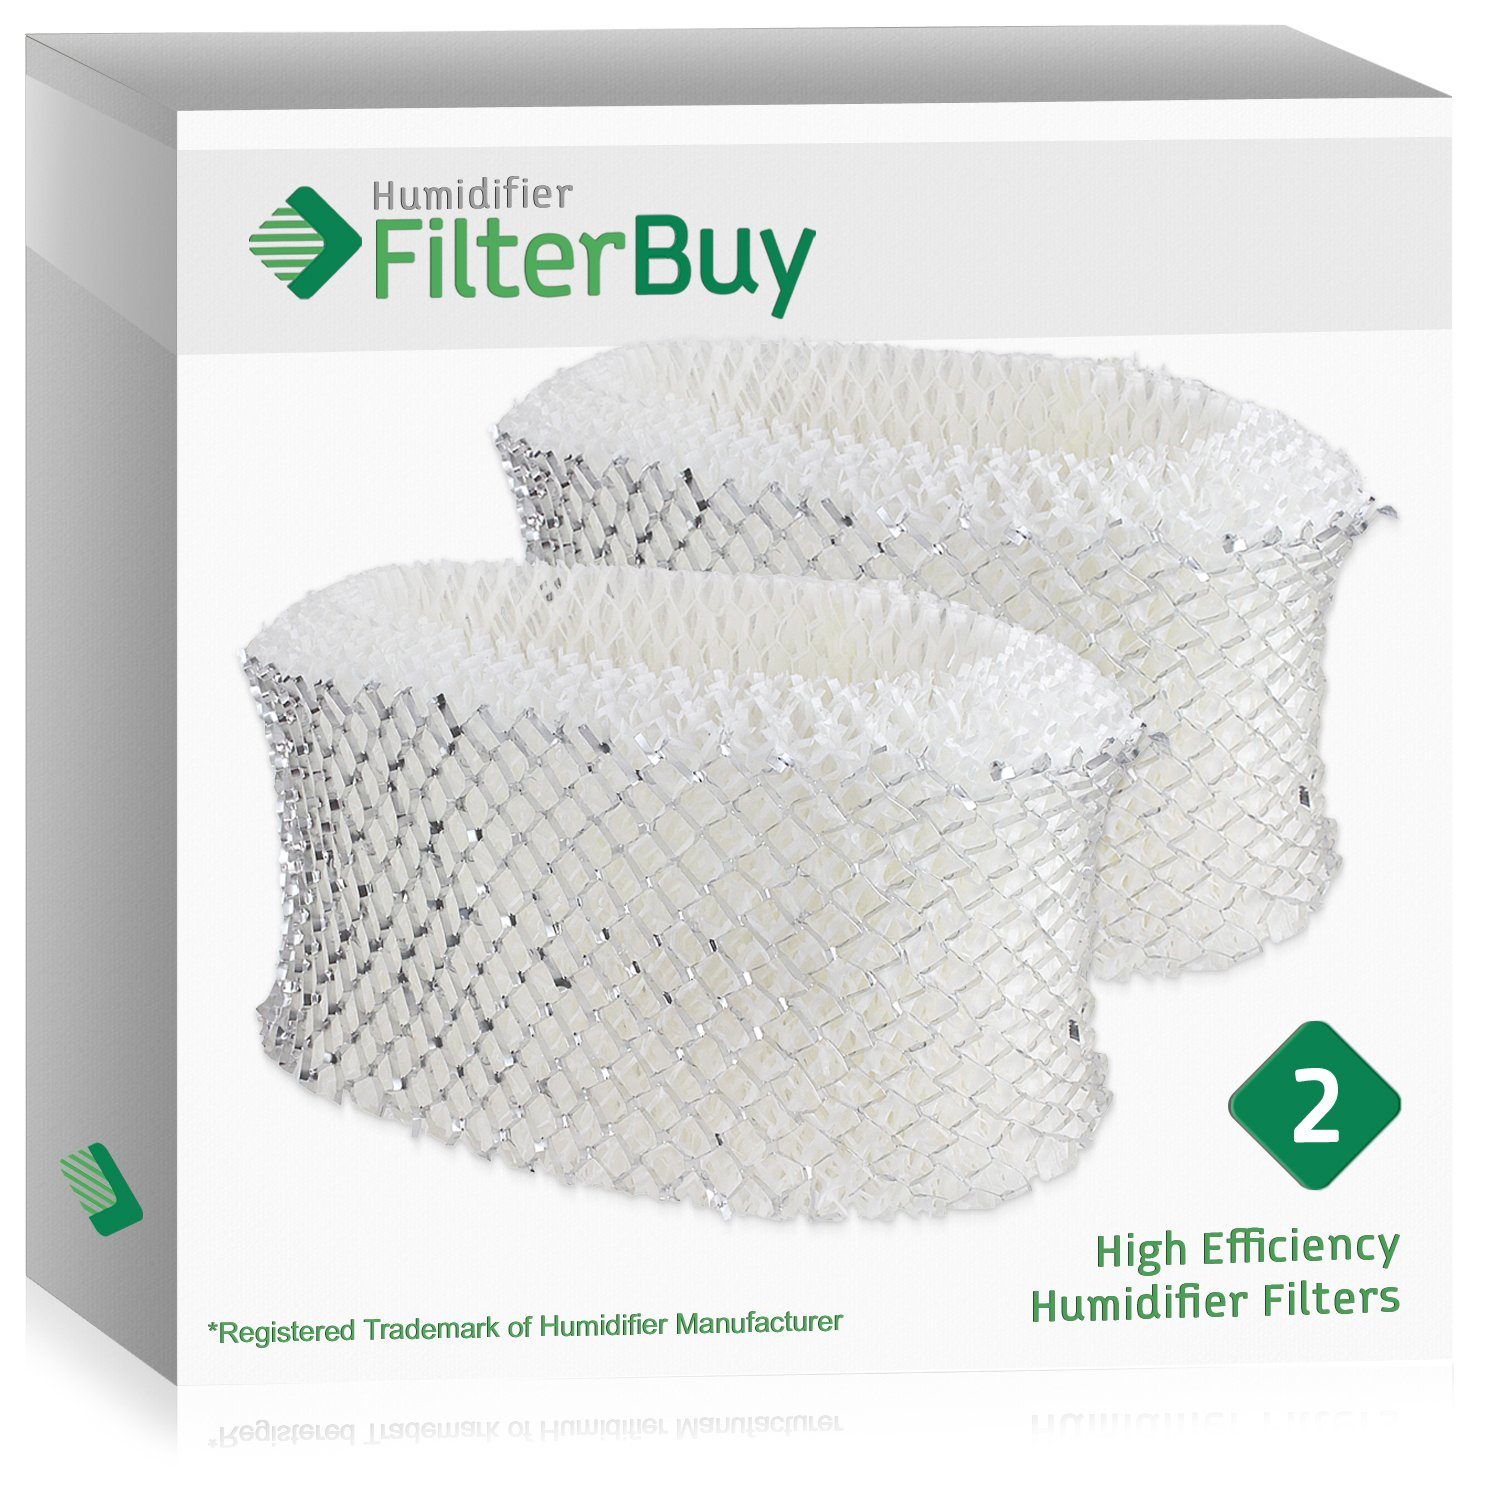 FilterBuy Replacement Humidifier Filters Compatible with Holmes HWF62. Replacement for Part # HWF62, HWF62D, HWF-62 & Hamilton Beach Part # 05910. Pack of 2.